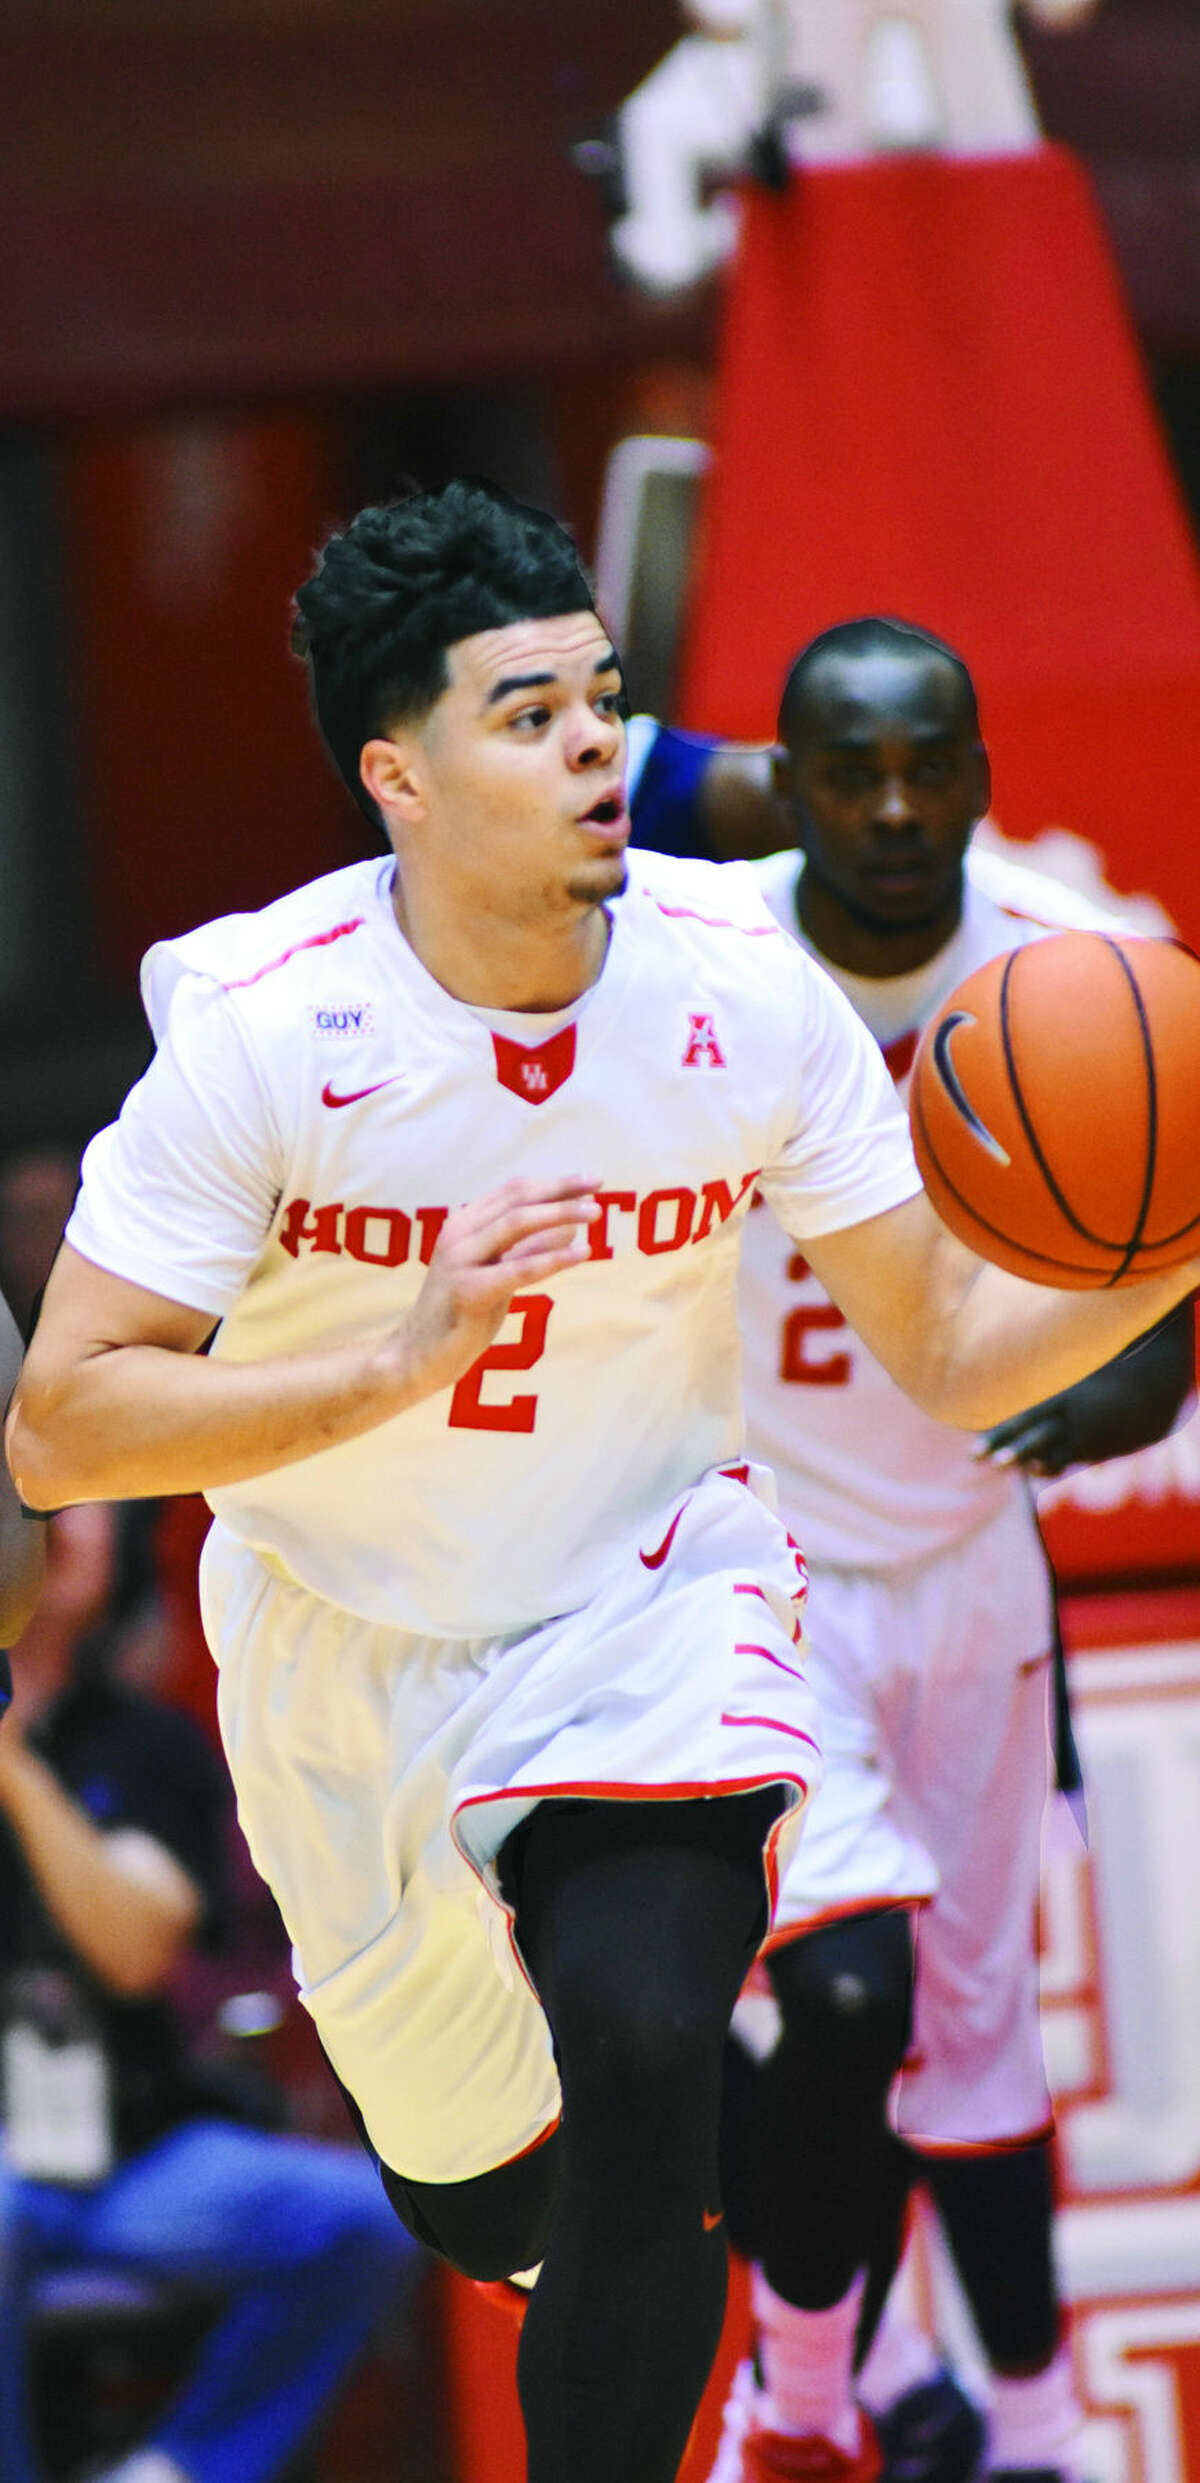 University of Houston sophomore guard Rob Gray, Jr. led the team, and the American Athletic Conference, in scoring this season. He scored a team-high 17 points in the 72-69 loss to Tulane in the AAC Championship quarterfinals.